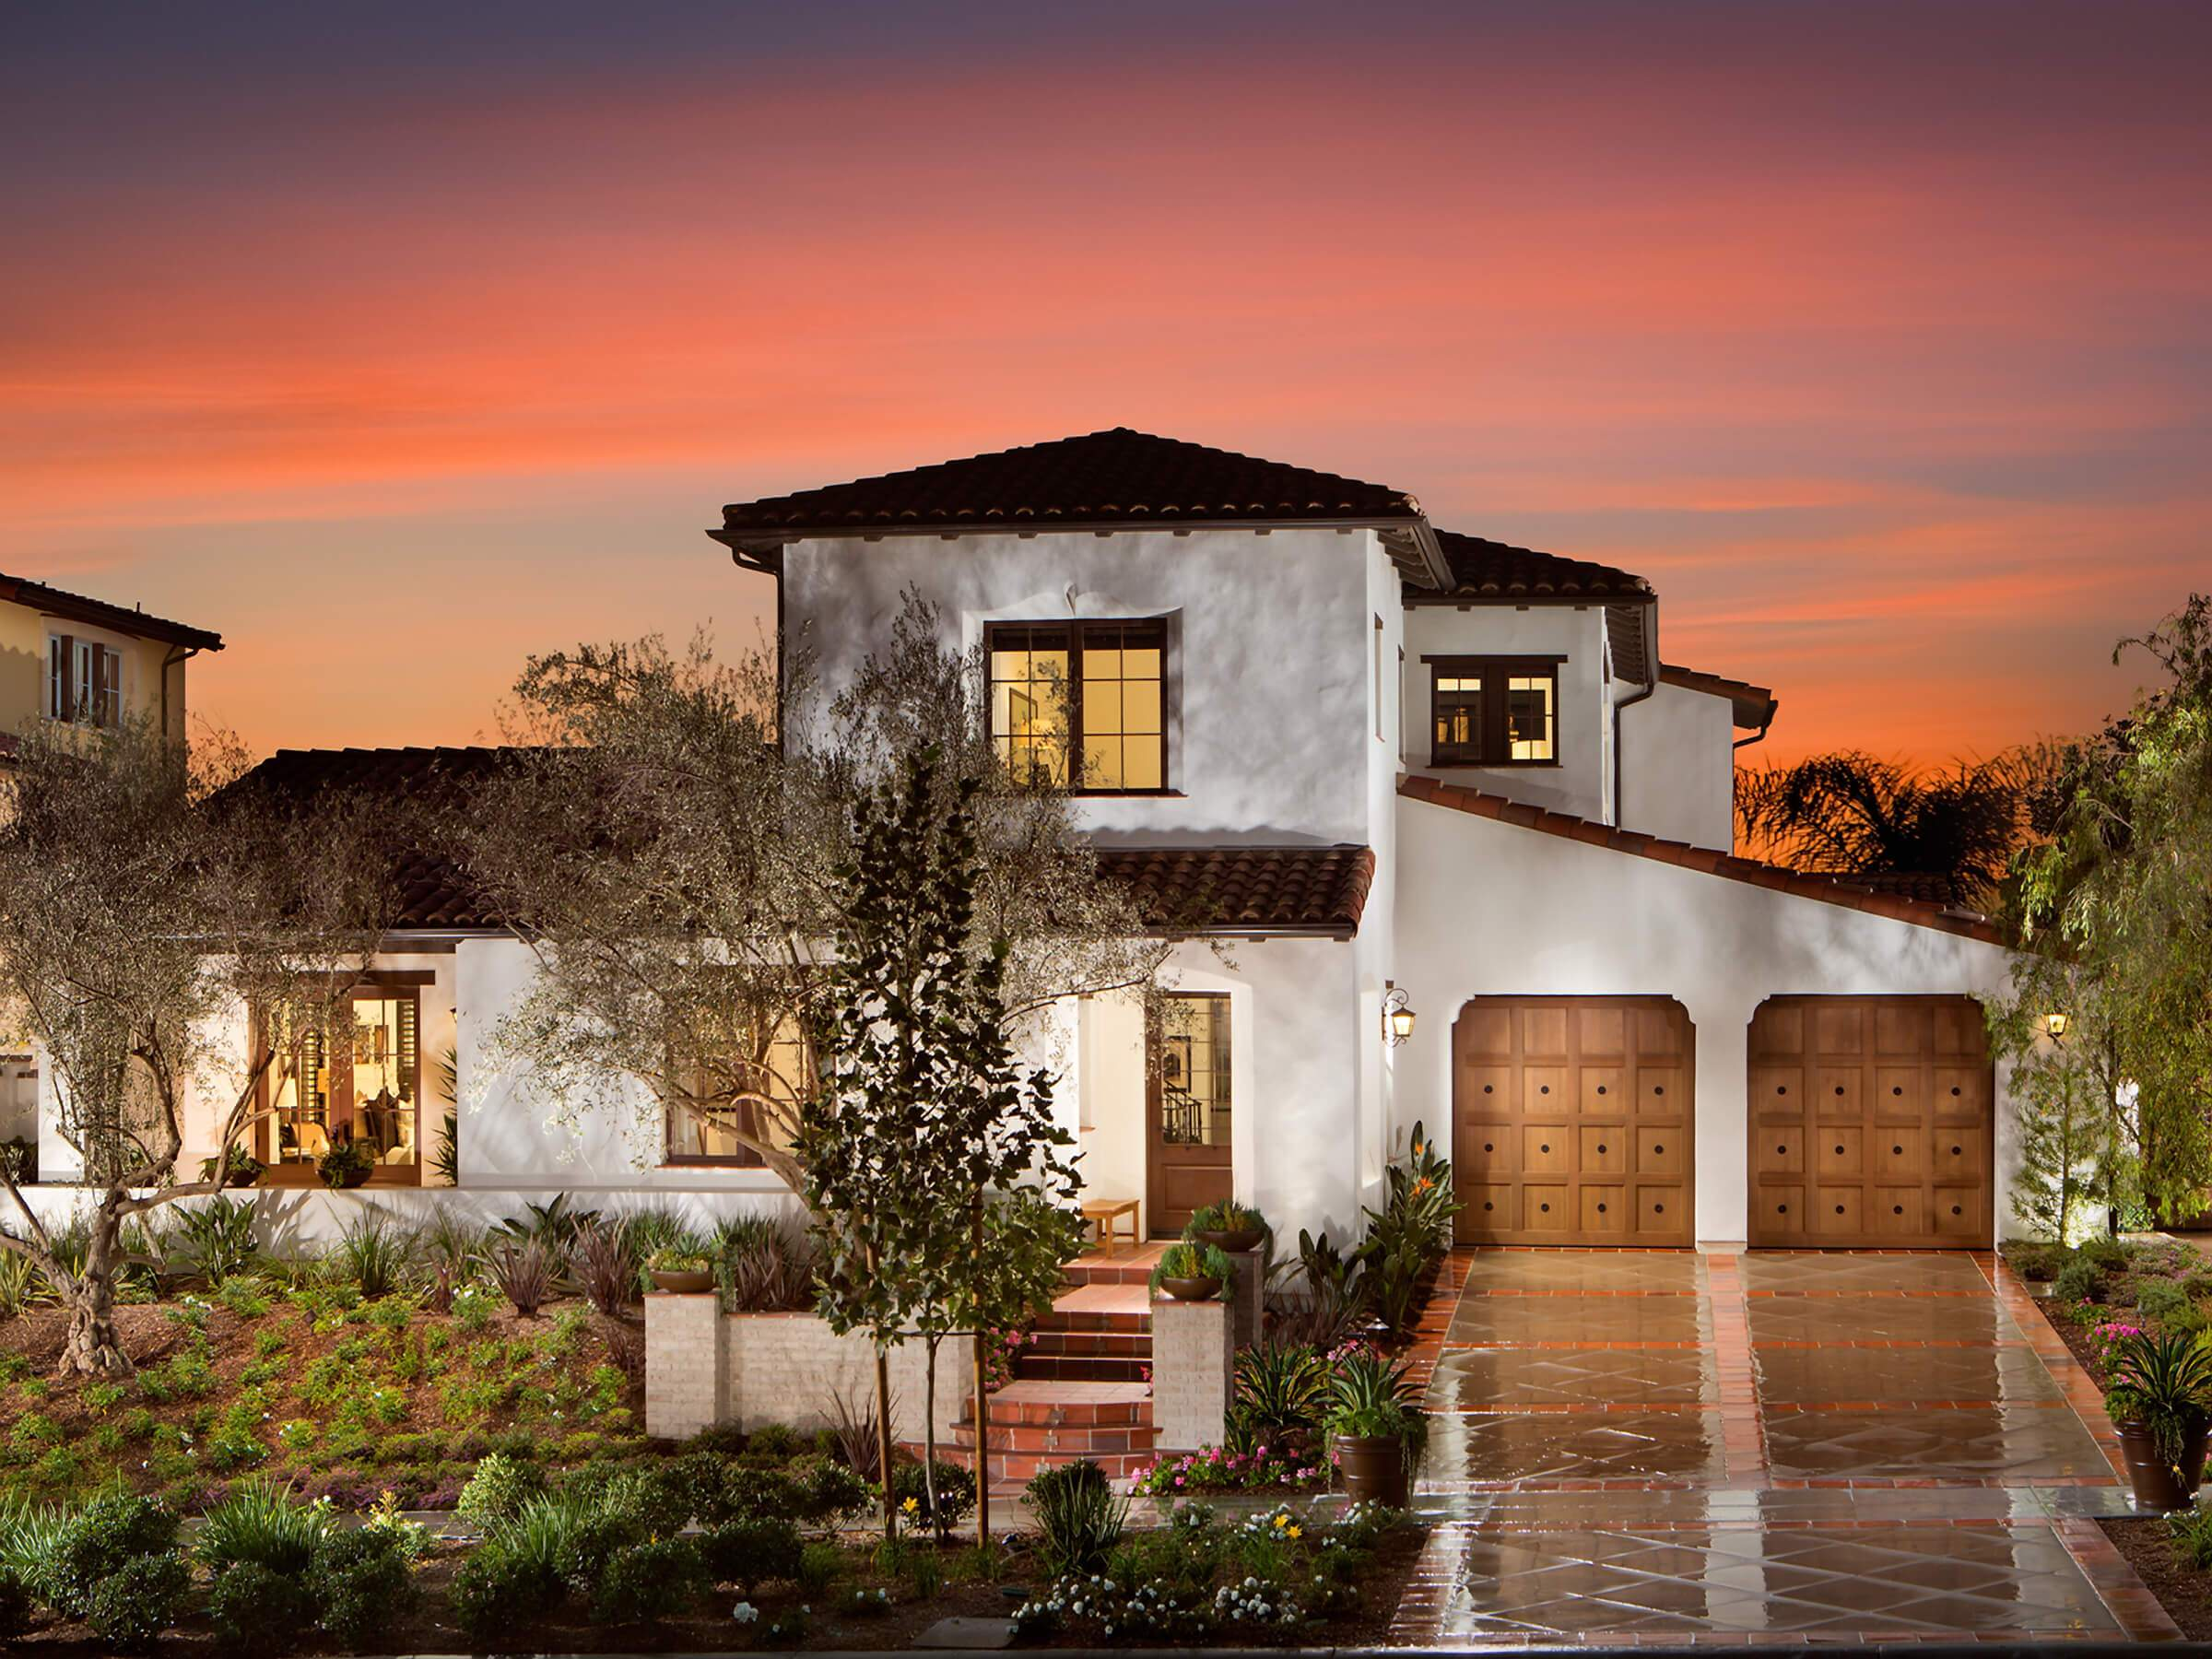 'Unique la famille' building or community at 'Artisan Collection at Covenant Hills 63 Bell Pasture Road Ladera Ranch, California 92694 United States'